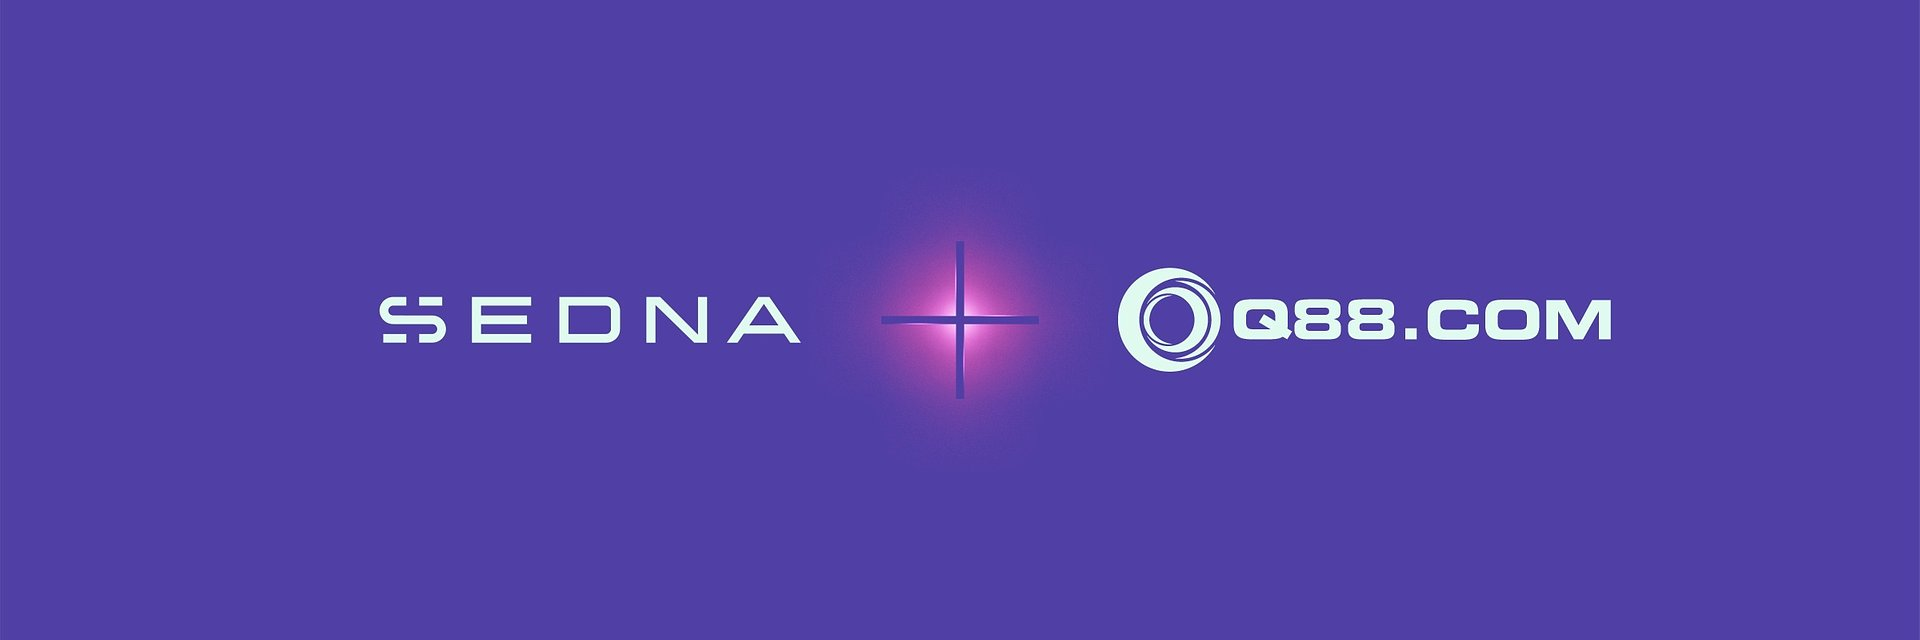 Q88 and SEDNA Announce Partnership to Streamline Shipping Data and Communications